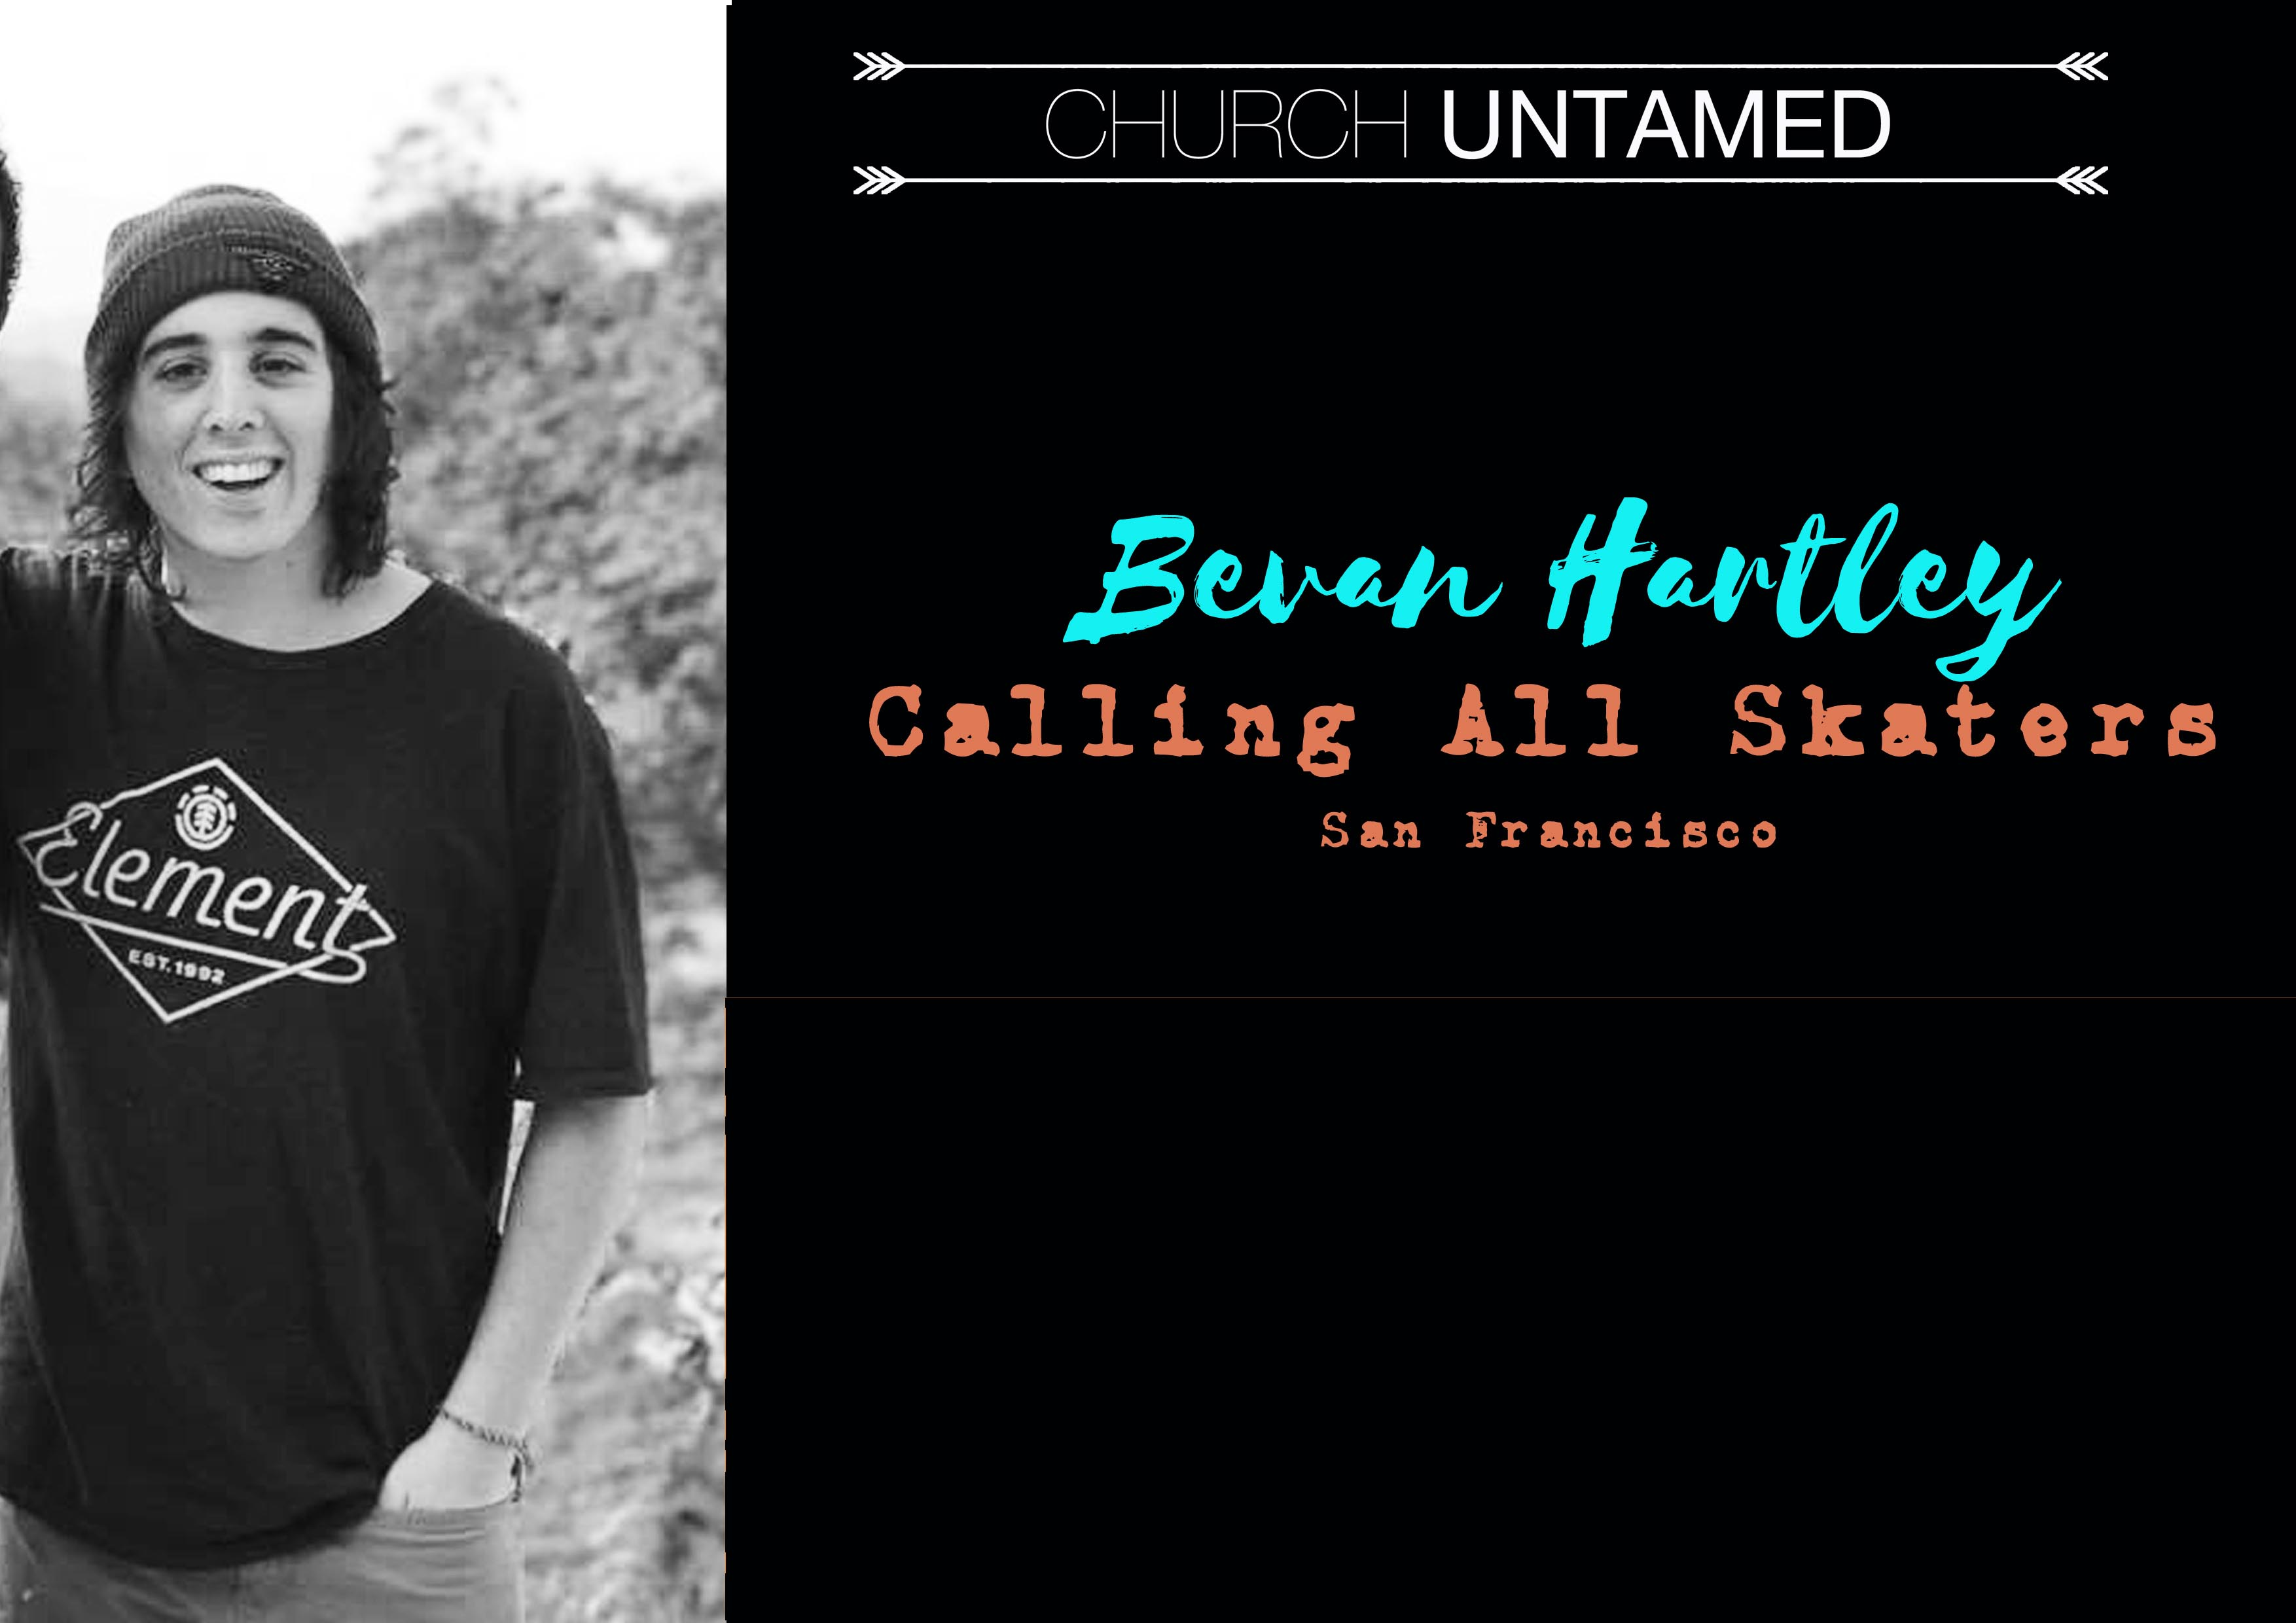 Calling All Skaters - Bevan Hartley